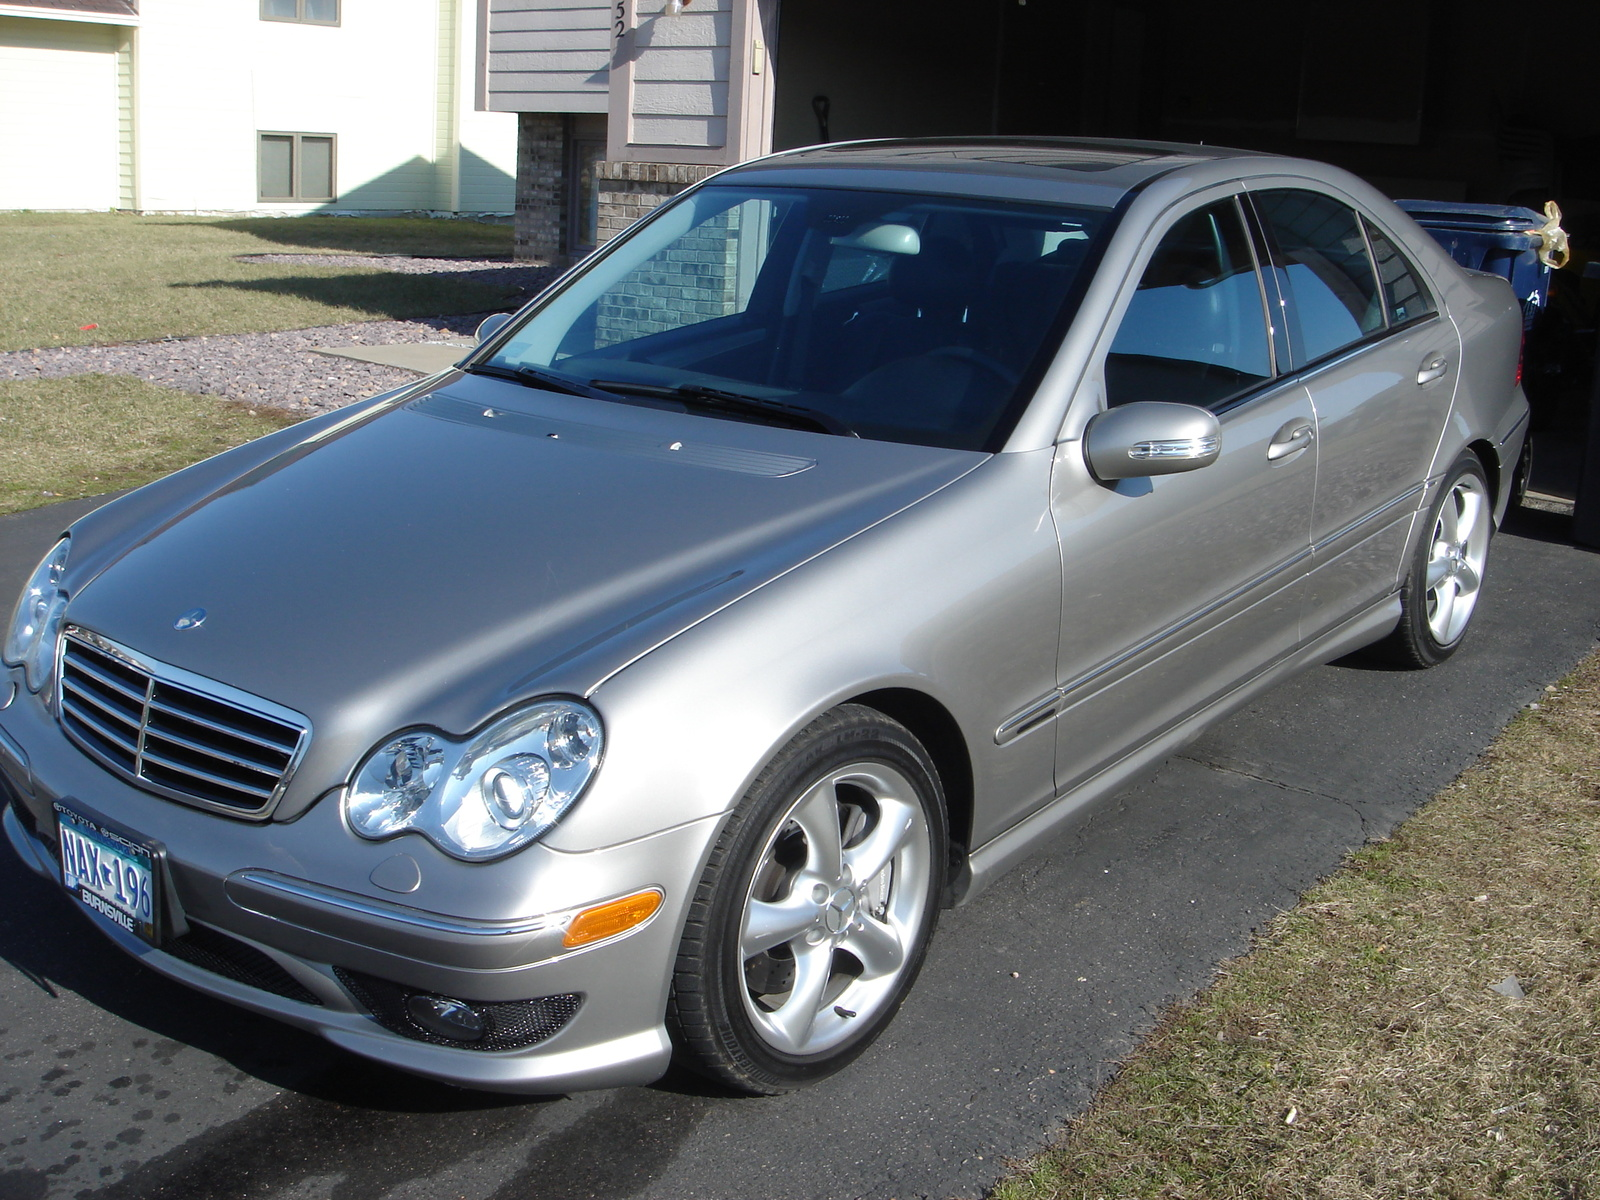 2005 mercedes benz c class pictures cargurus for 2005 mercedes benz suv